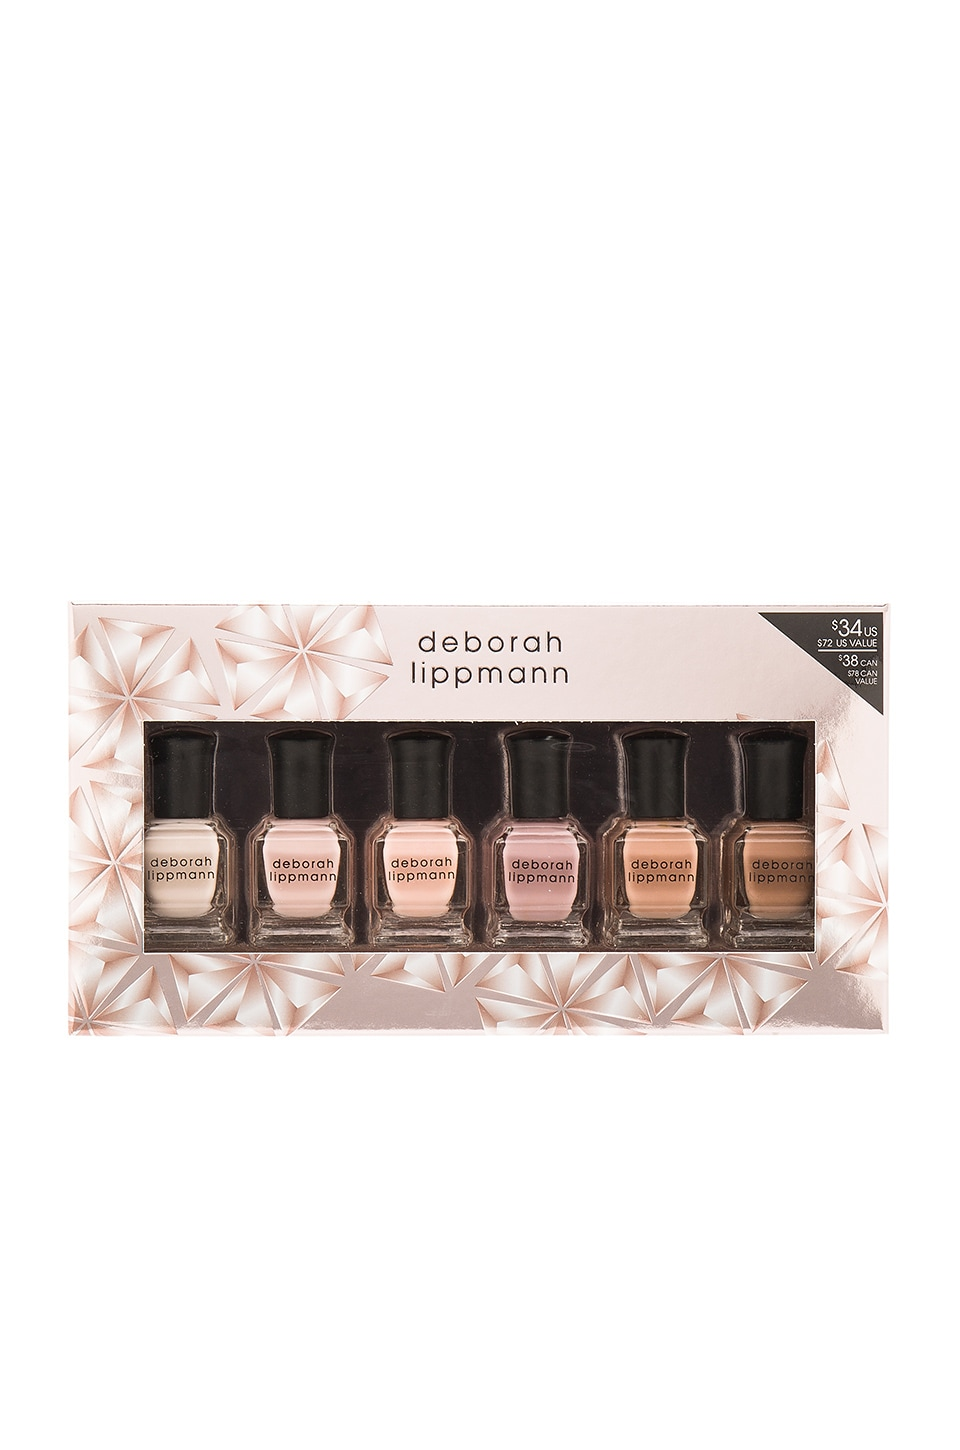 Deborah Lippmann Undressed 6 Piece Nail Lacquer Holiday Set